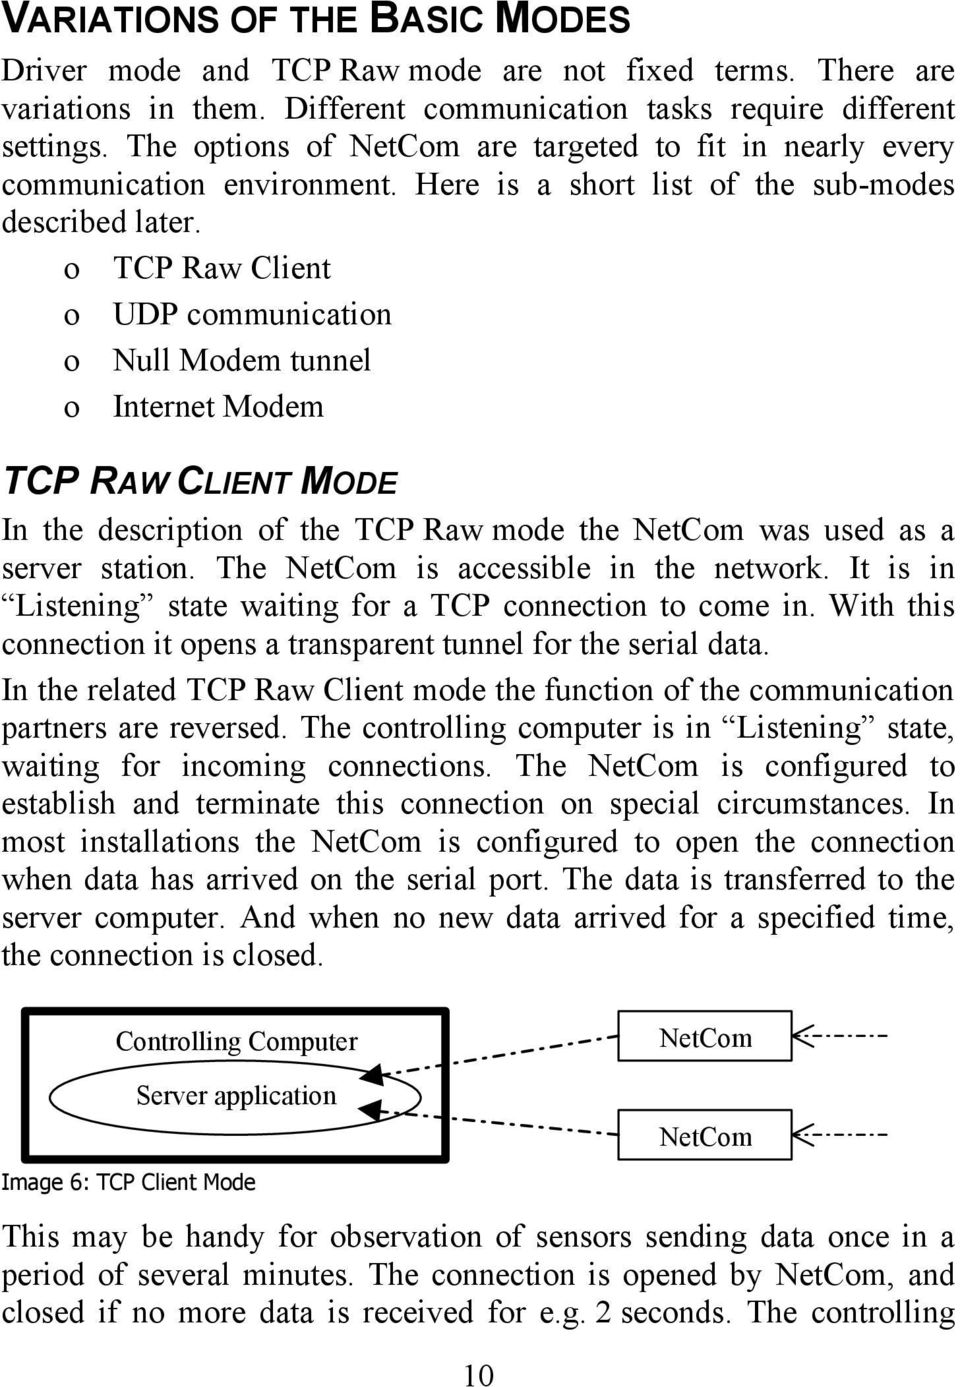 o TCP Raw Client o UDP communication o Null Modem tunnel o Internet Modem TCP RAW CLIENT MODE In the description of the TCP Raw mode the was used as a server station. The is accessible in the network.